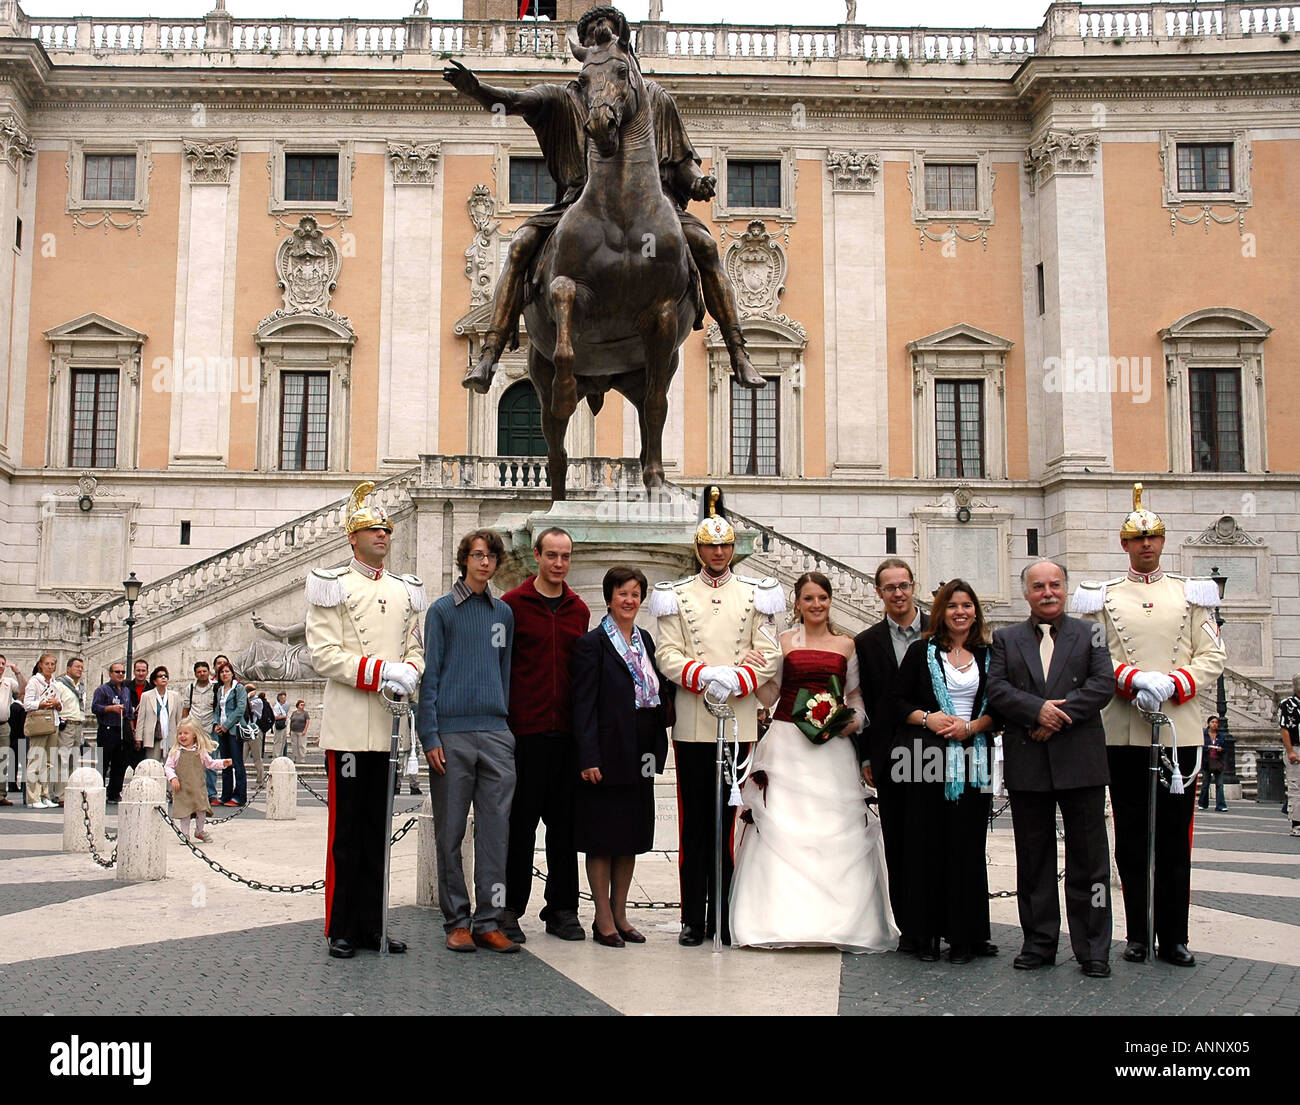 A Presidential Guardsman, his bride escort and family, pose for wedding photos in Rome's Michelangelo-designed Capitoline piazza - Stock Image